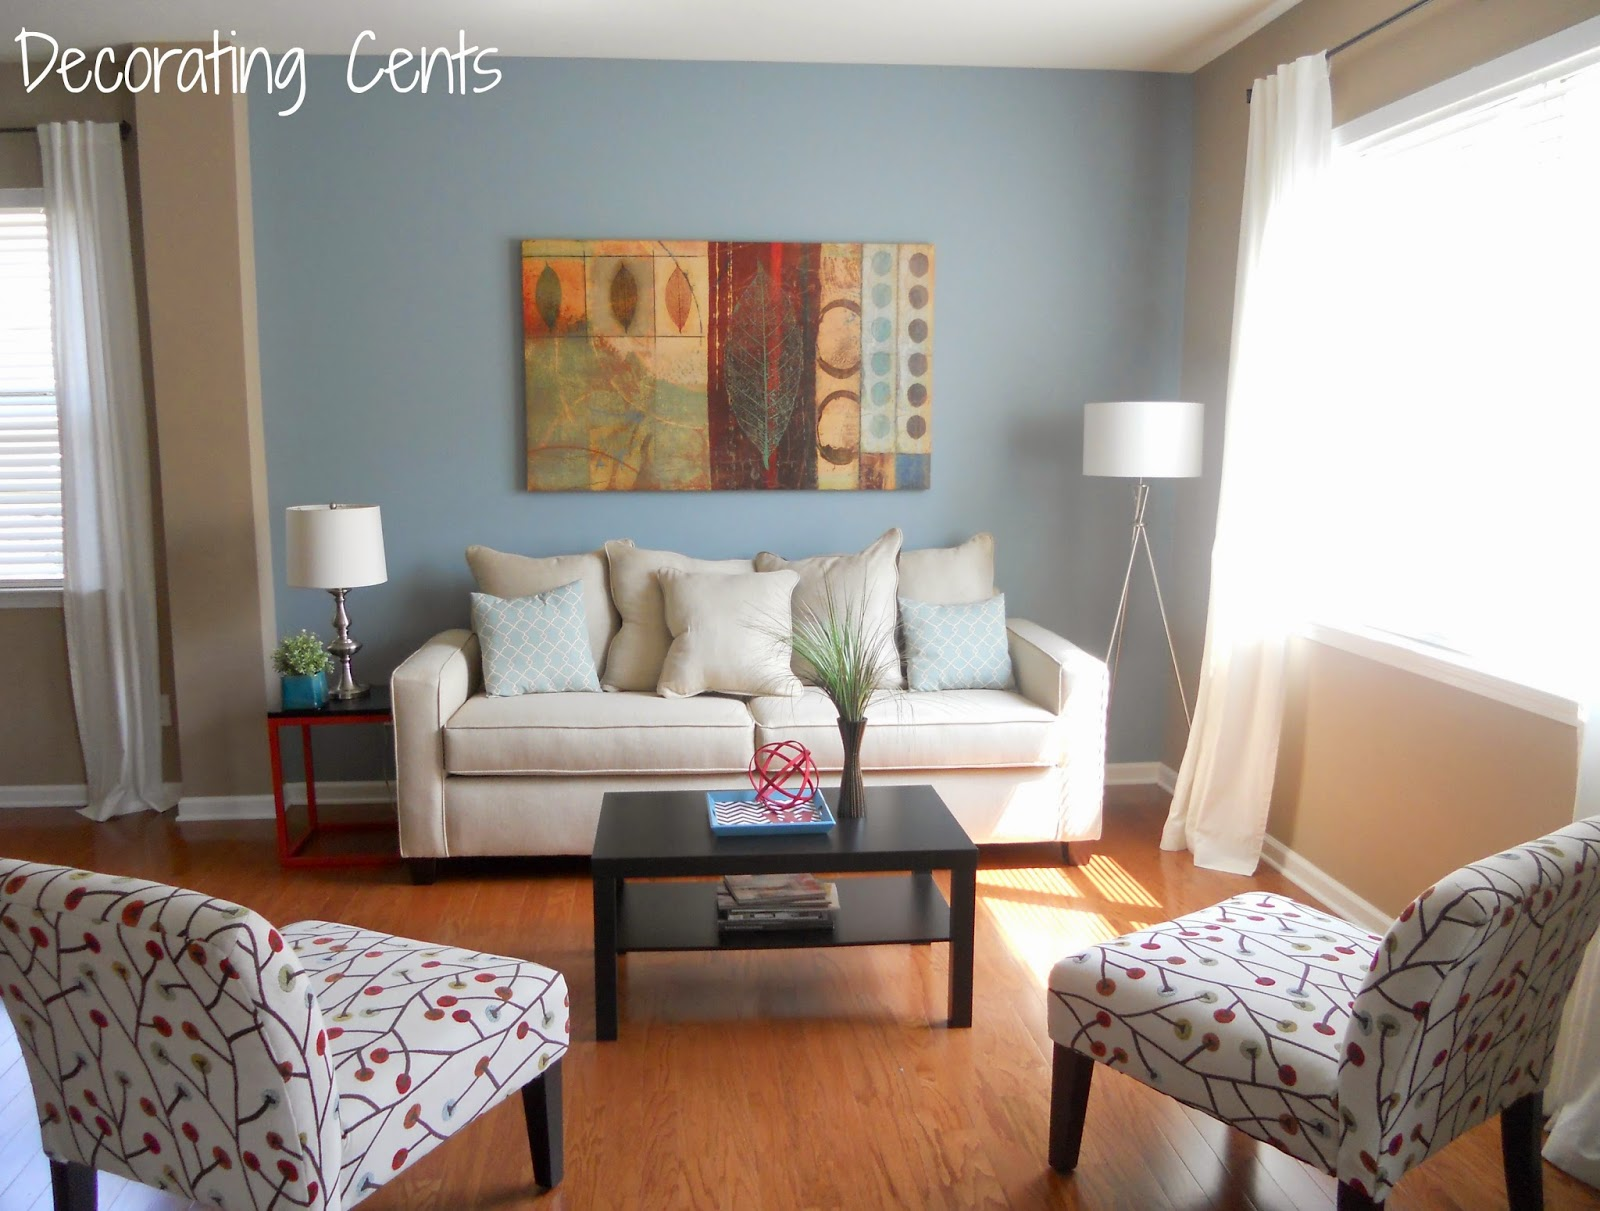 Decorating Cents Paint Colors in Our Home